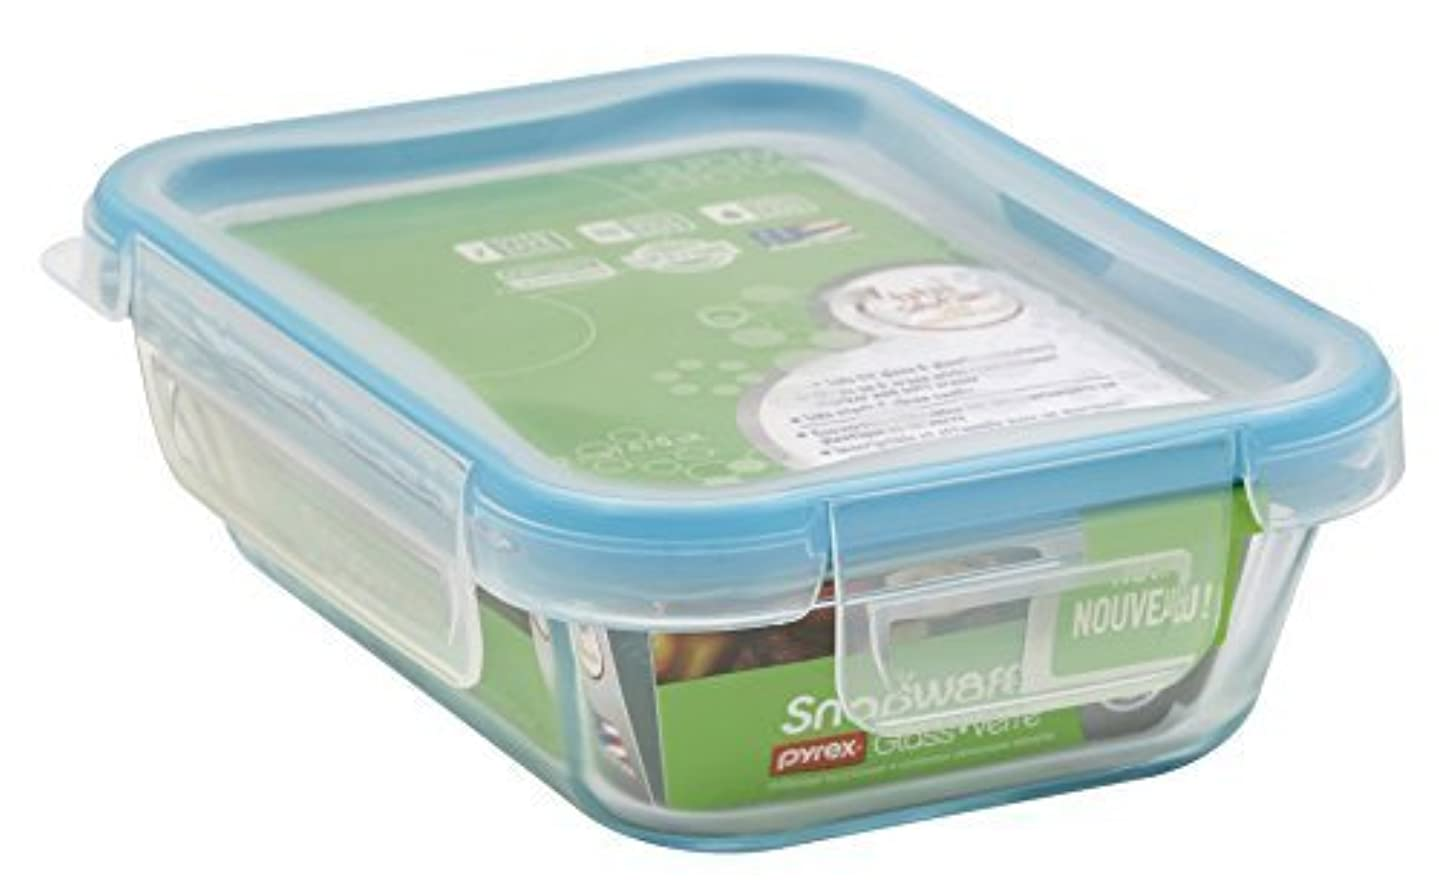 Snapware 1109307 2 Cup Glass Rectangle With Plastic Lid by Snapware